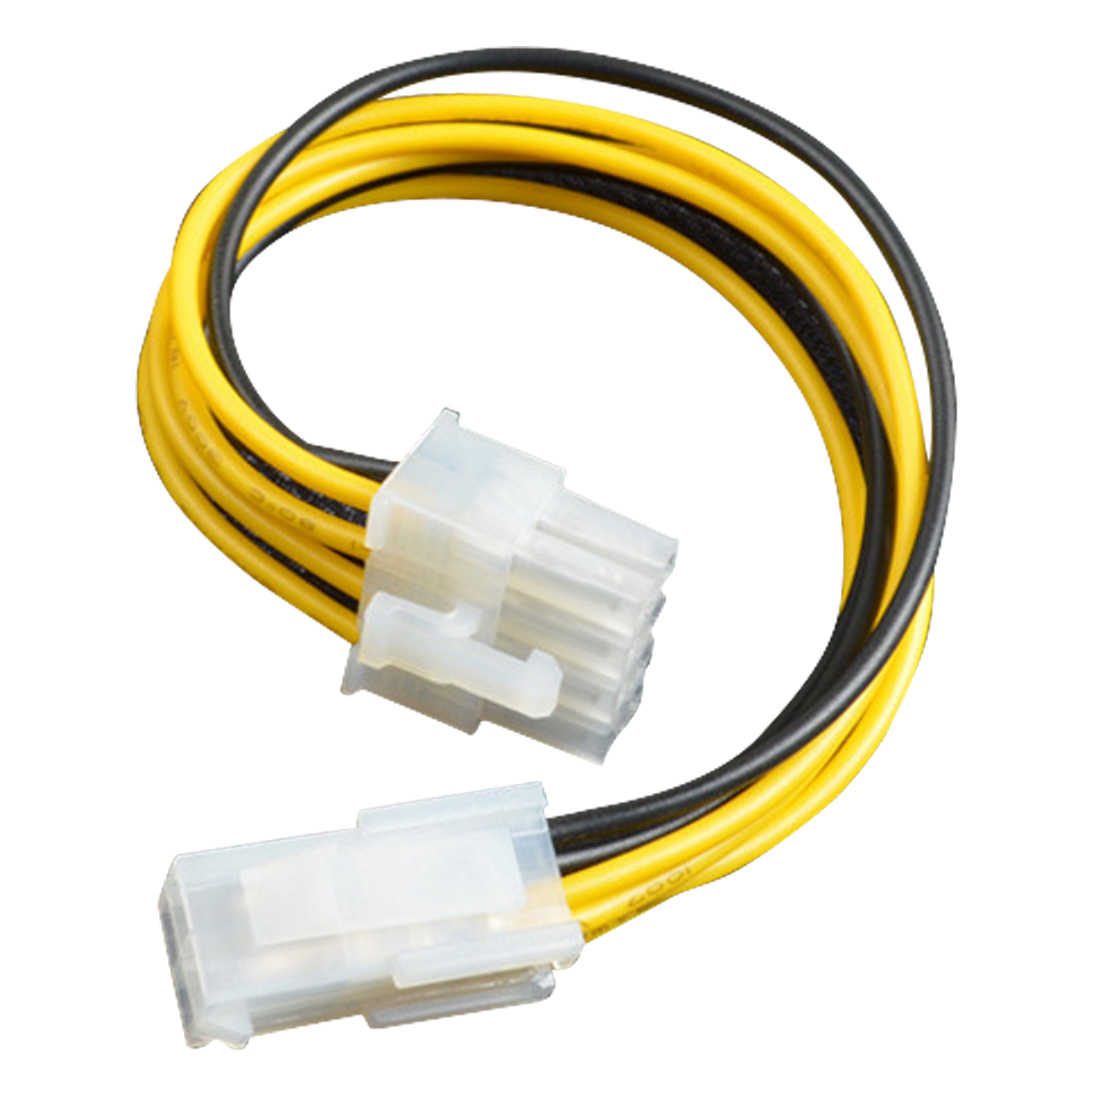 Computer Cables Professional ATX 4 <font><b>Pin</b></font> Male to <font><b>8</b></font> <font><b>Pin</b></font> Female EPS Power Cable Cord <font><b>Adapter</b></font> <font><b>CPU</b></font> Power Supply Connector New image